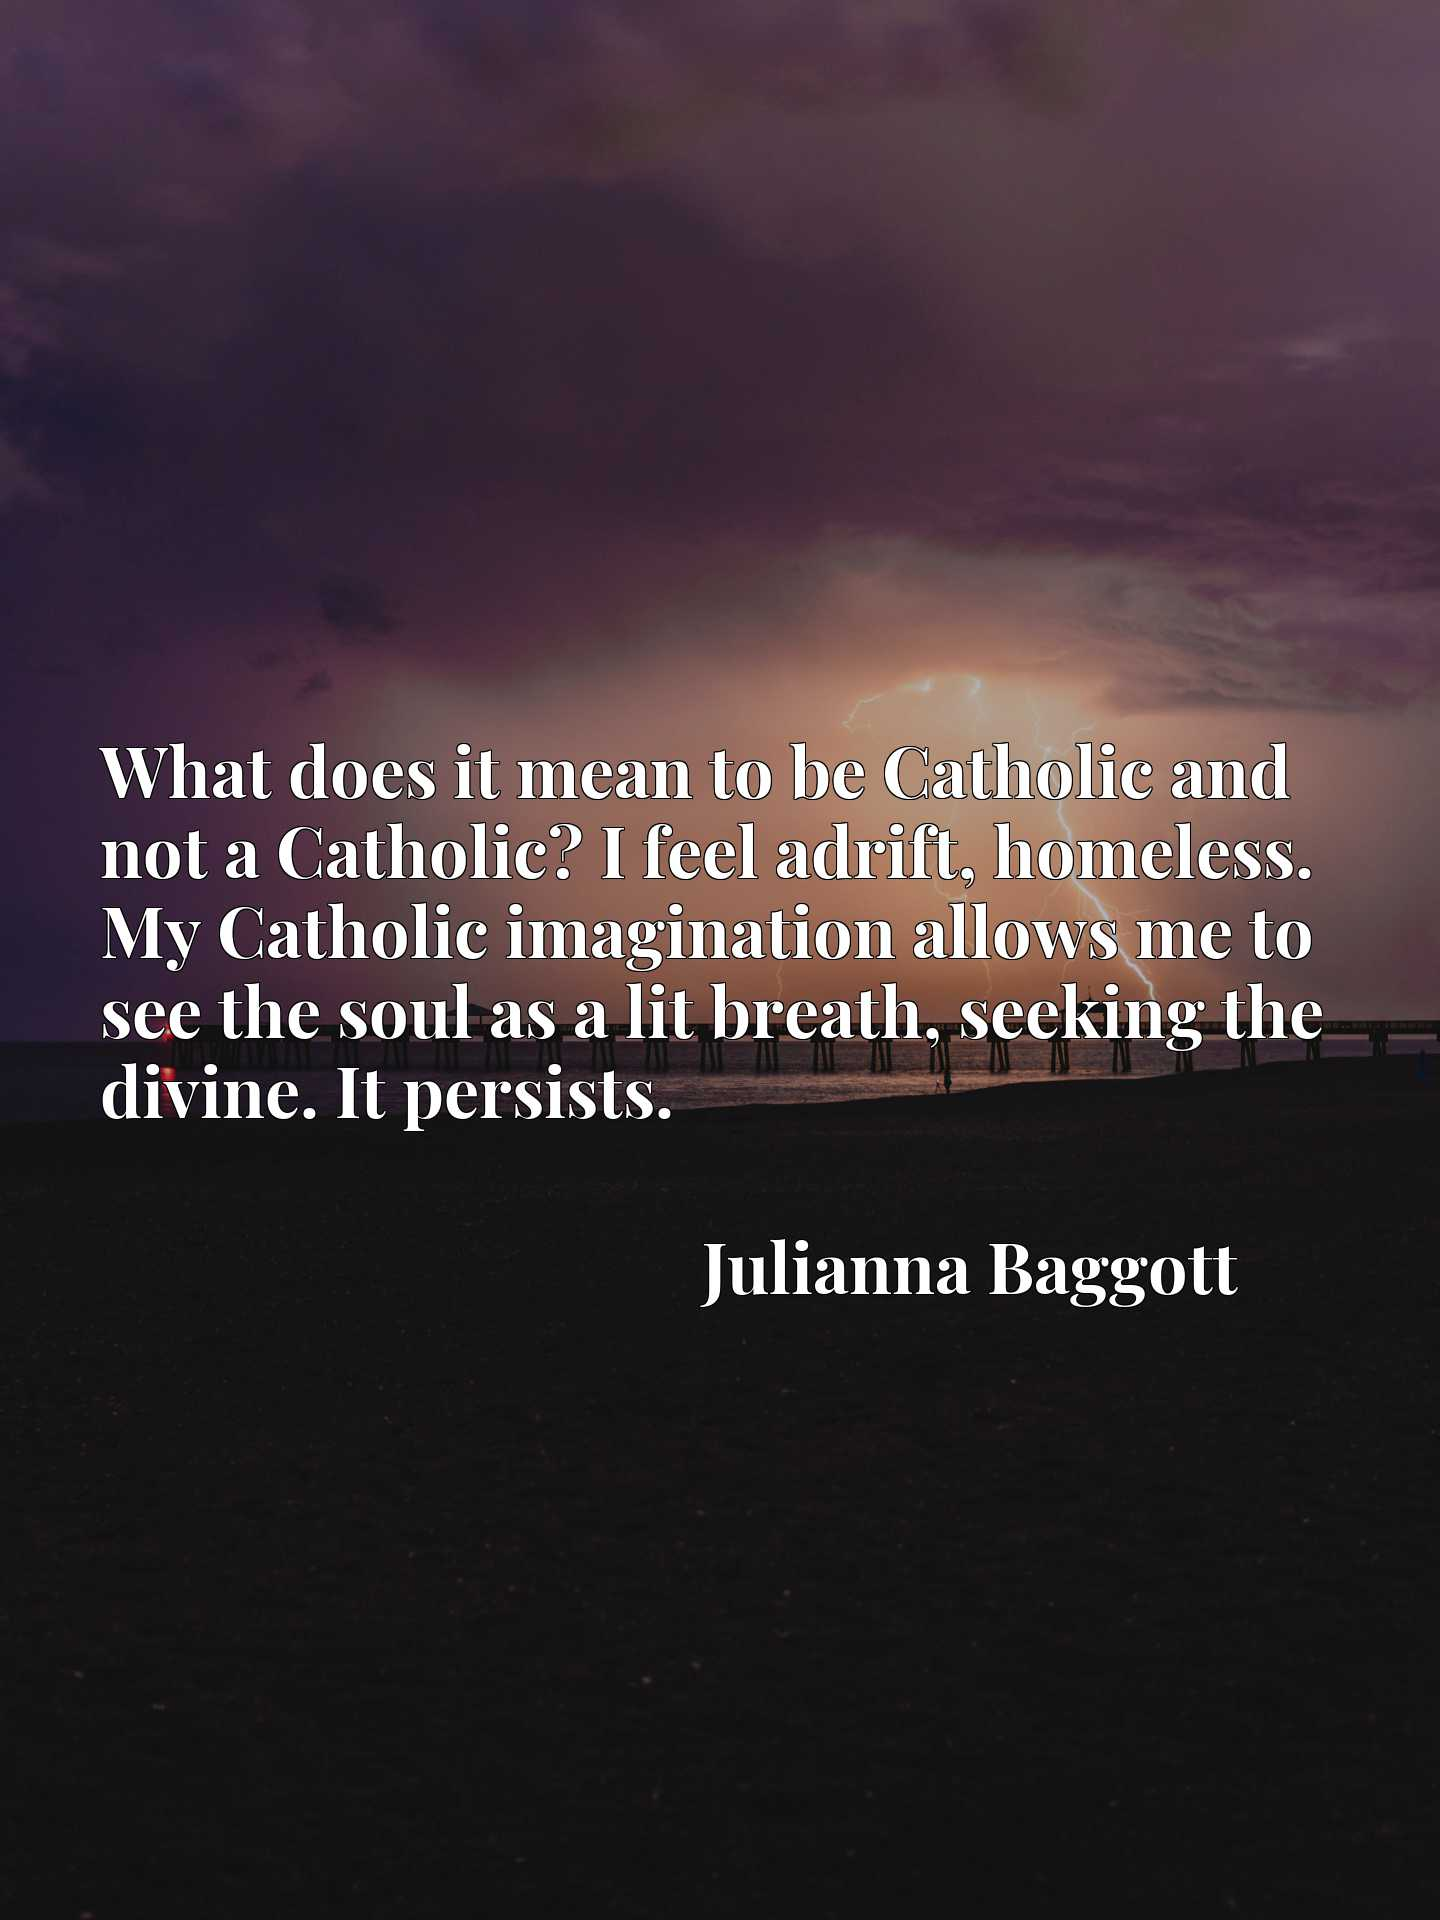 What does it mean to be Catholic and not a Catholic? I feel adrift, homeless. My Catholic imagination allows me to see the soul as a lit breath, seeking the divine. It persists.